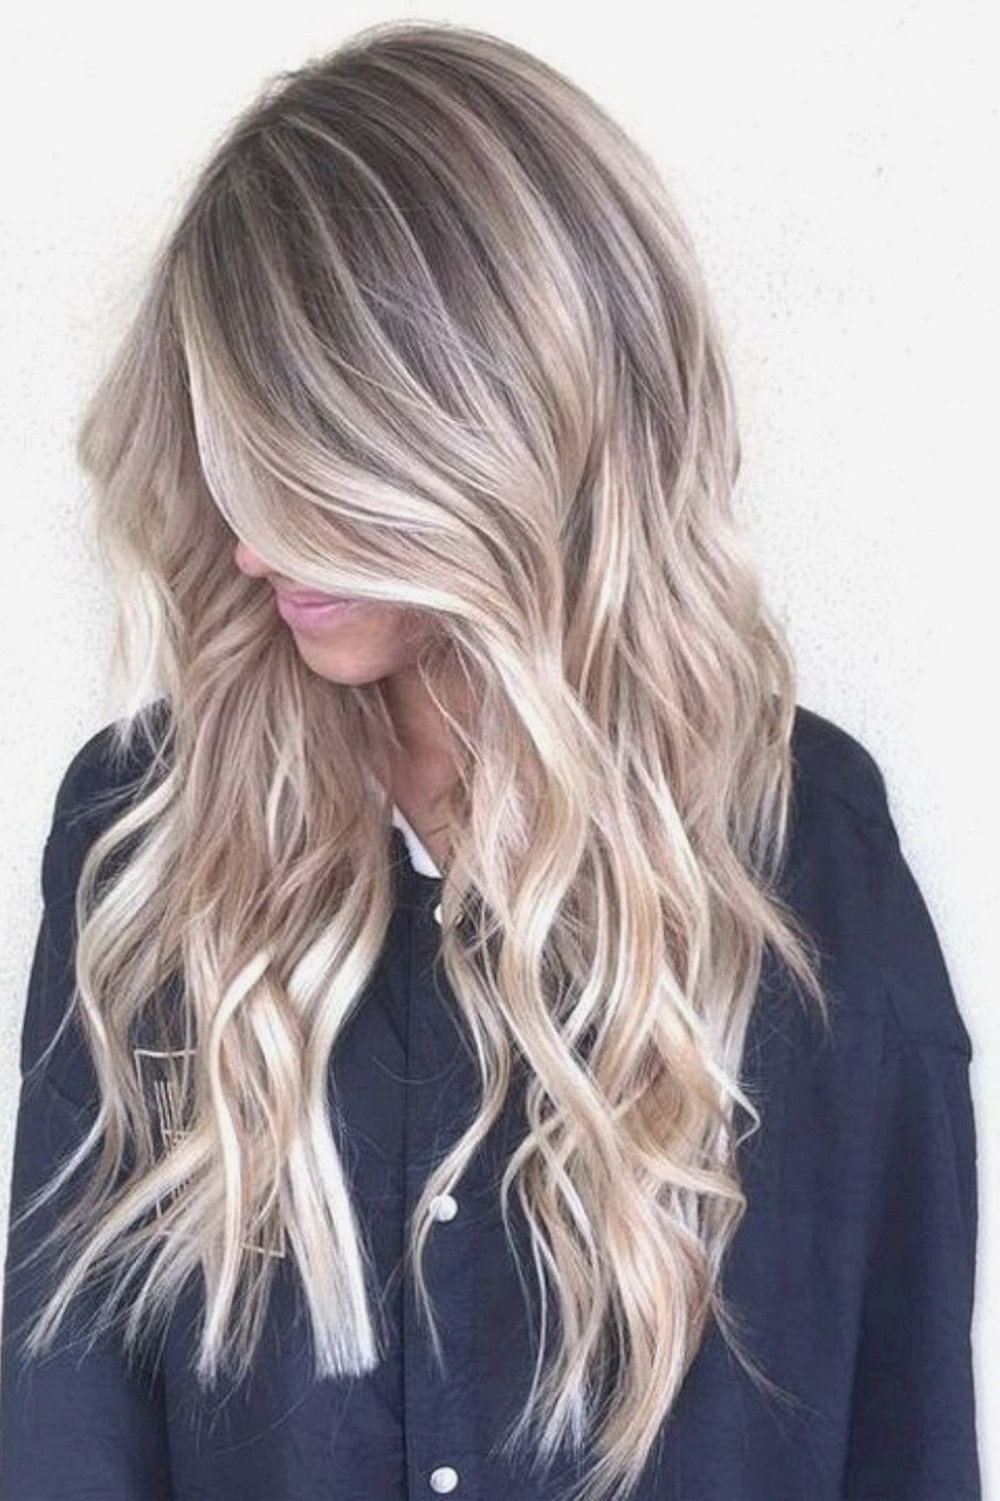 Well Known Fresh And Flirty Layered Blonde Hairstyles Throughout 60 Ultra Flirty Blonde Hairstyles You Have To Try — Style Estate (View 19 of 20)